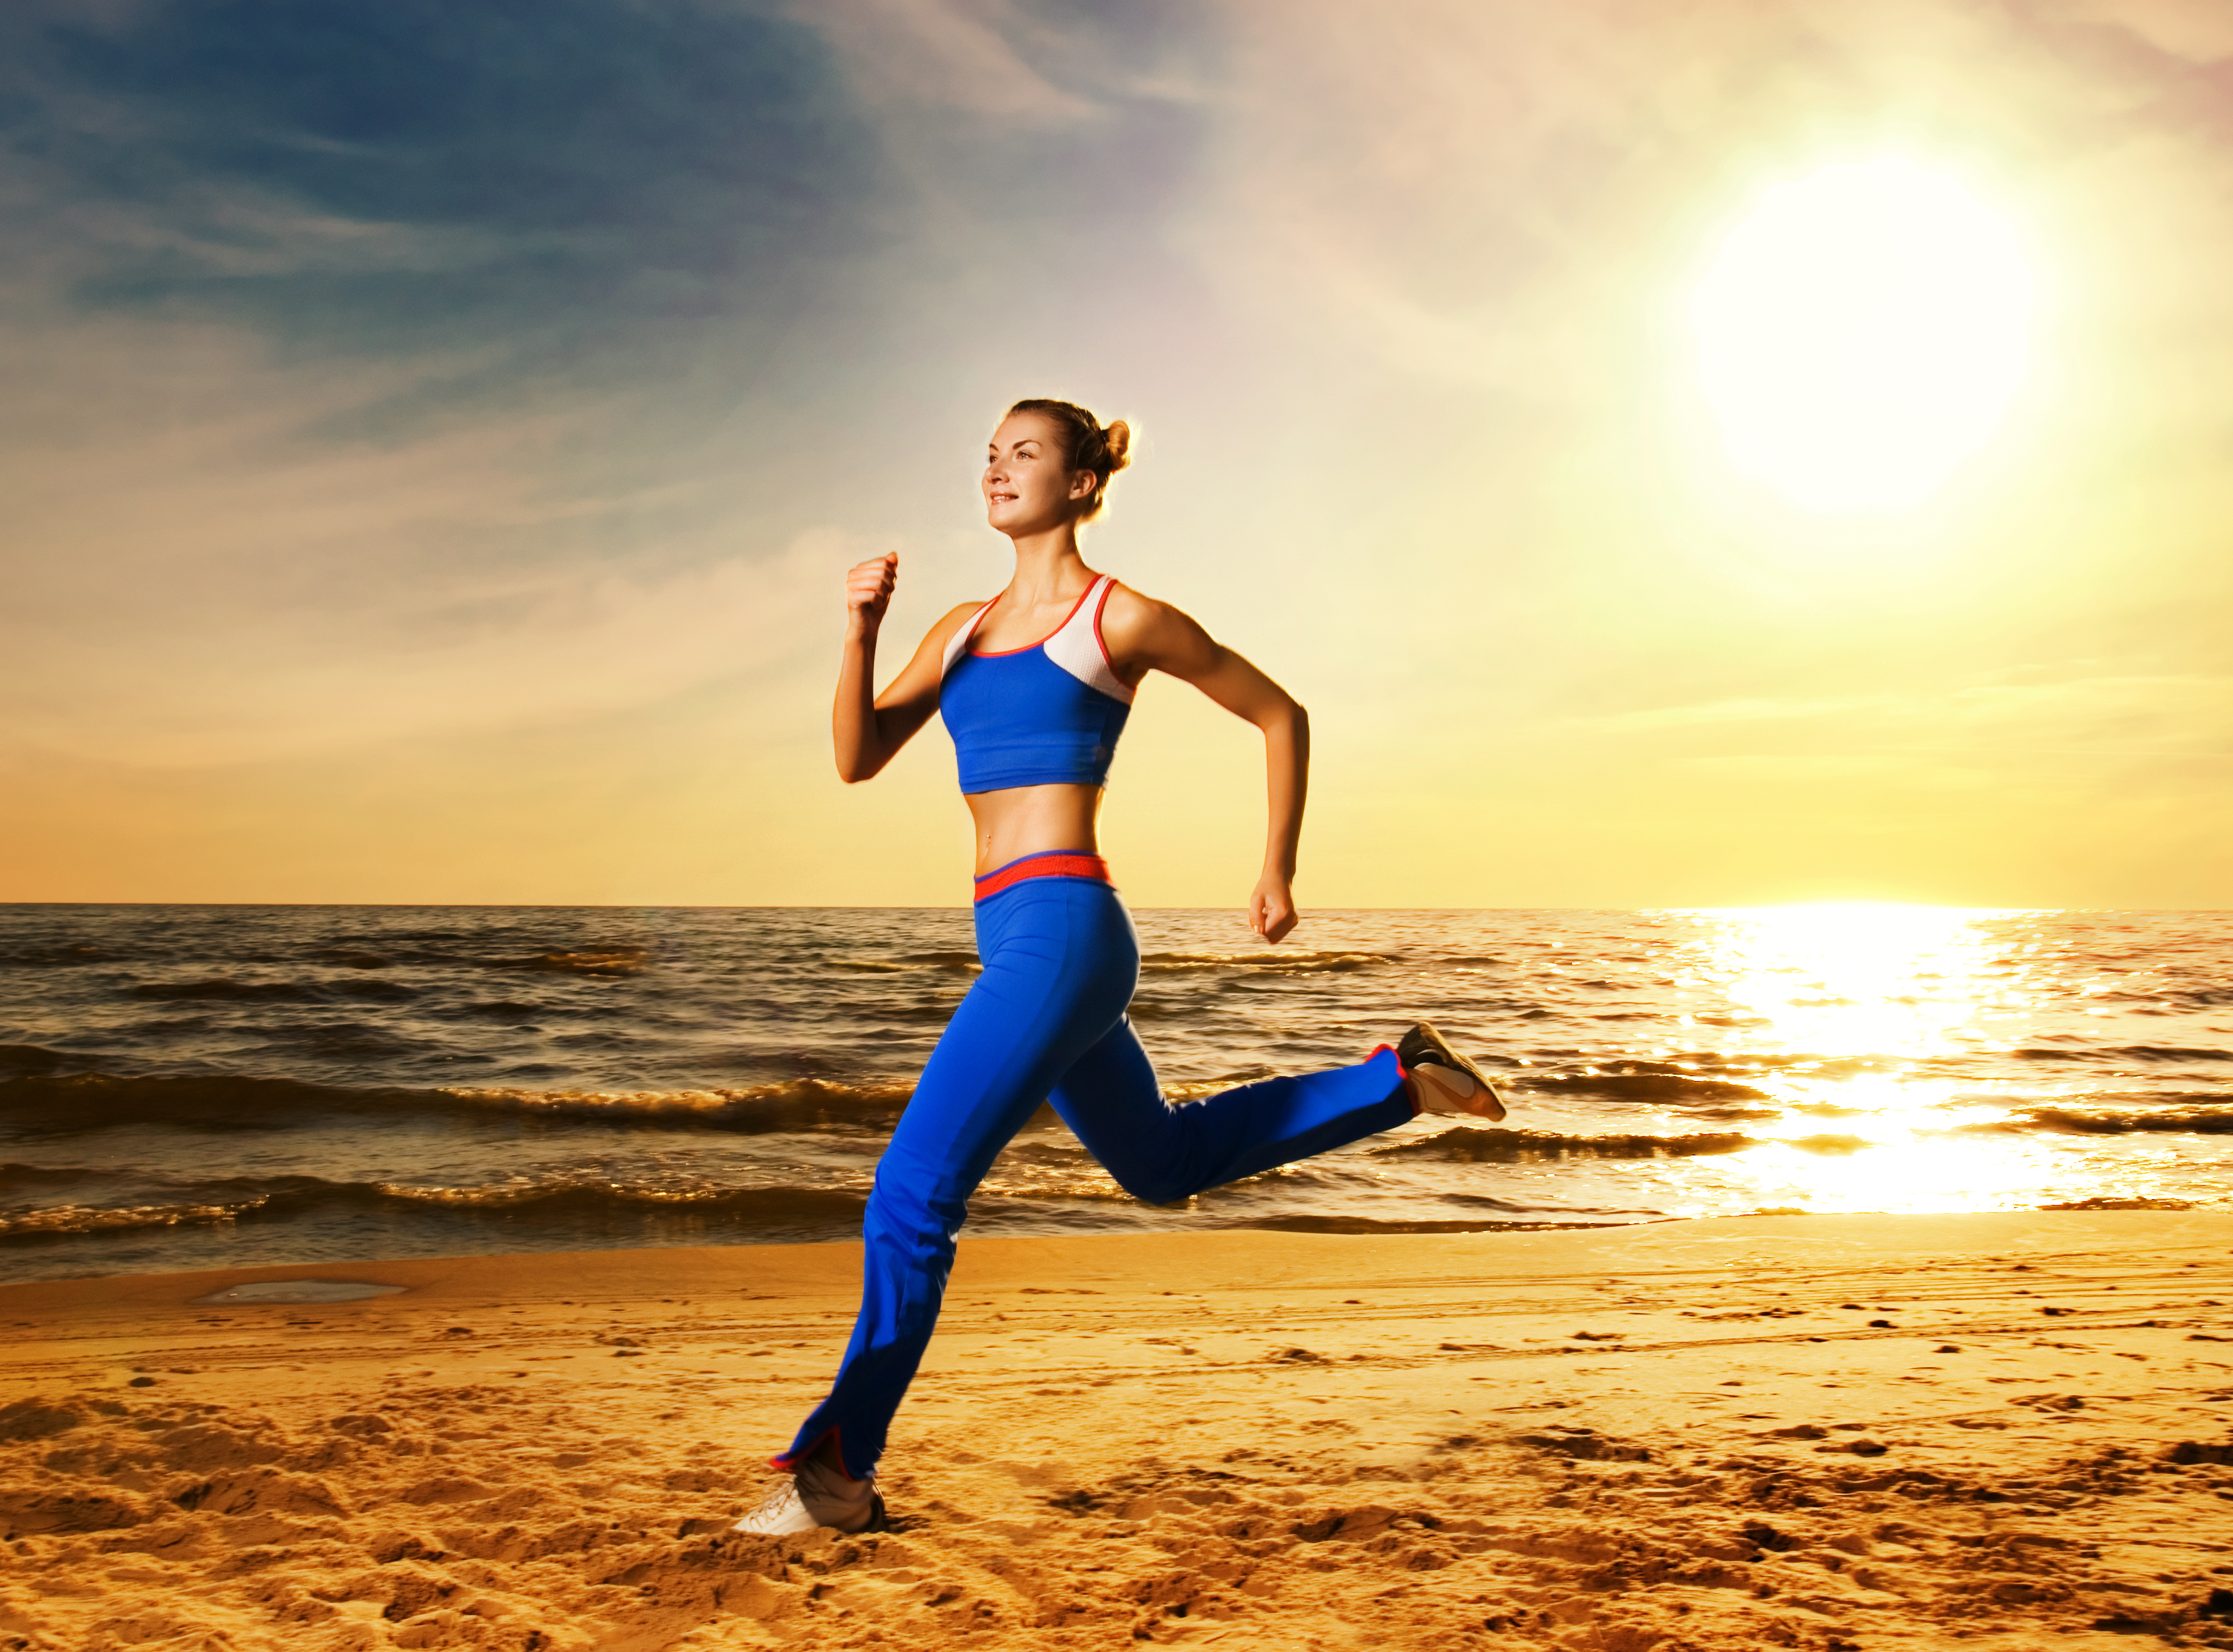 Running on the beach wallpapers high quality download free - Beach girl wallpaper hd ...